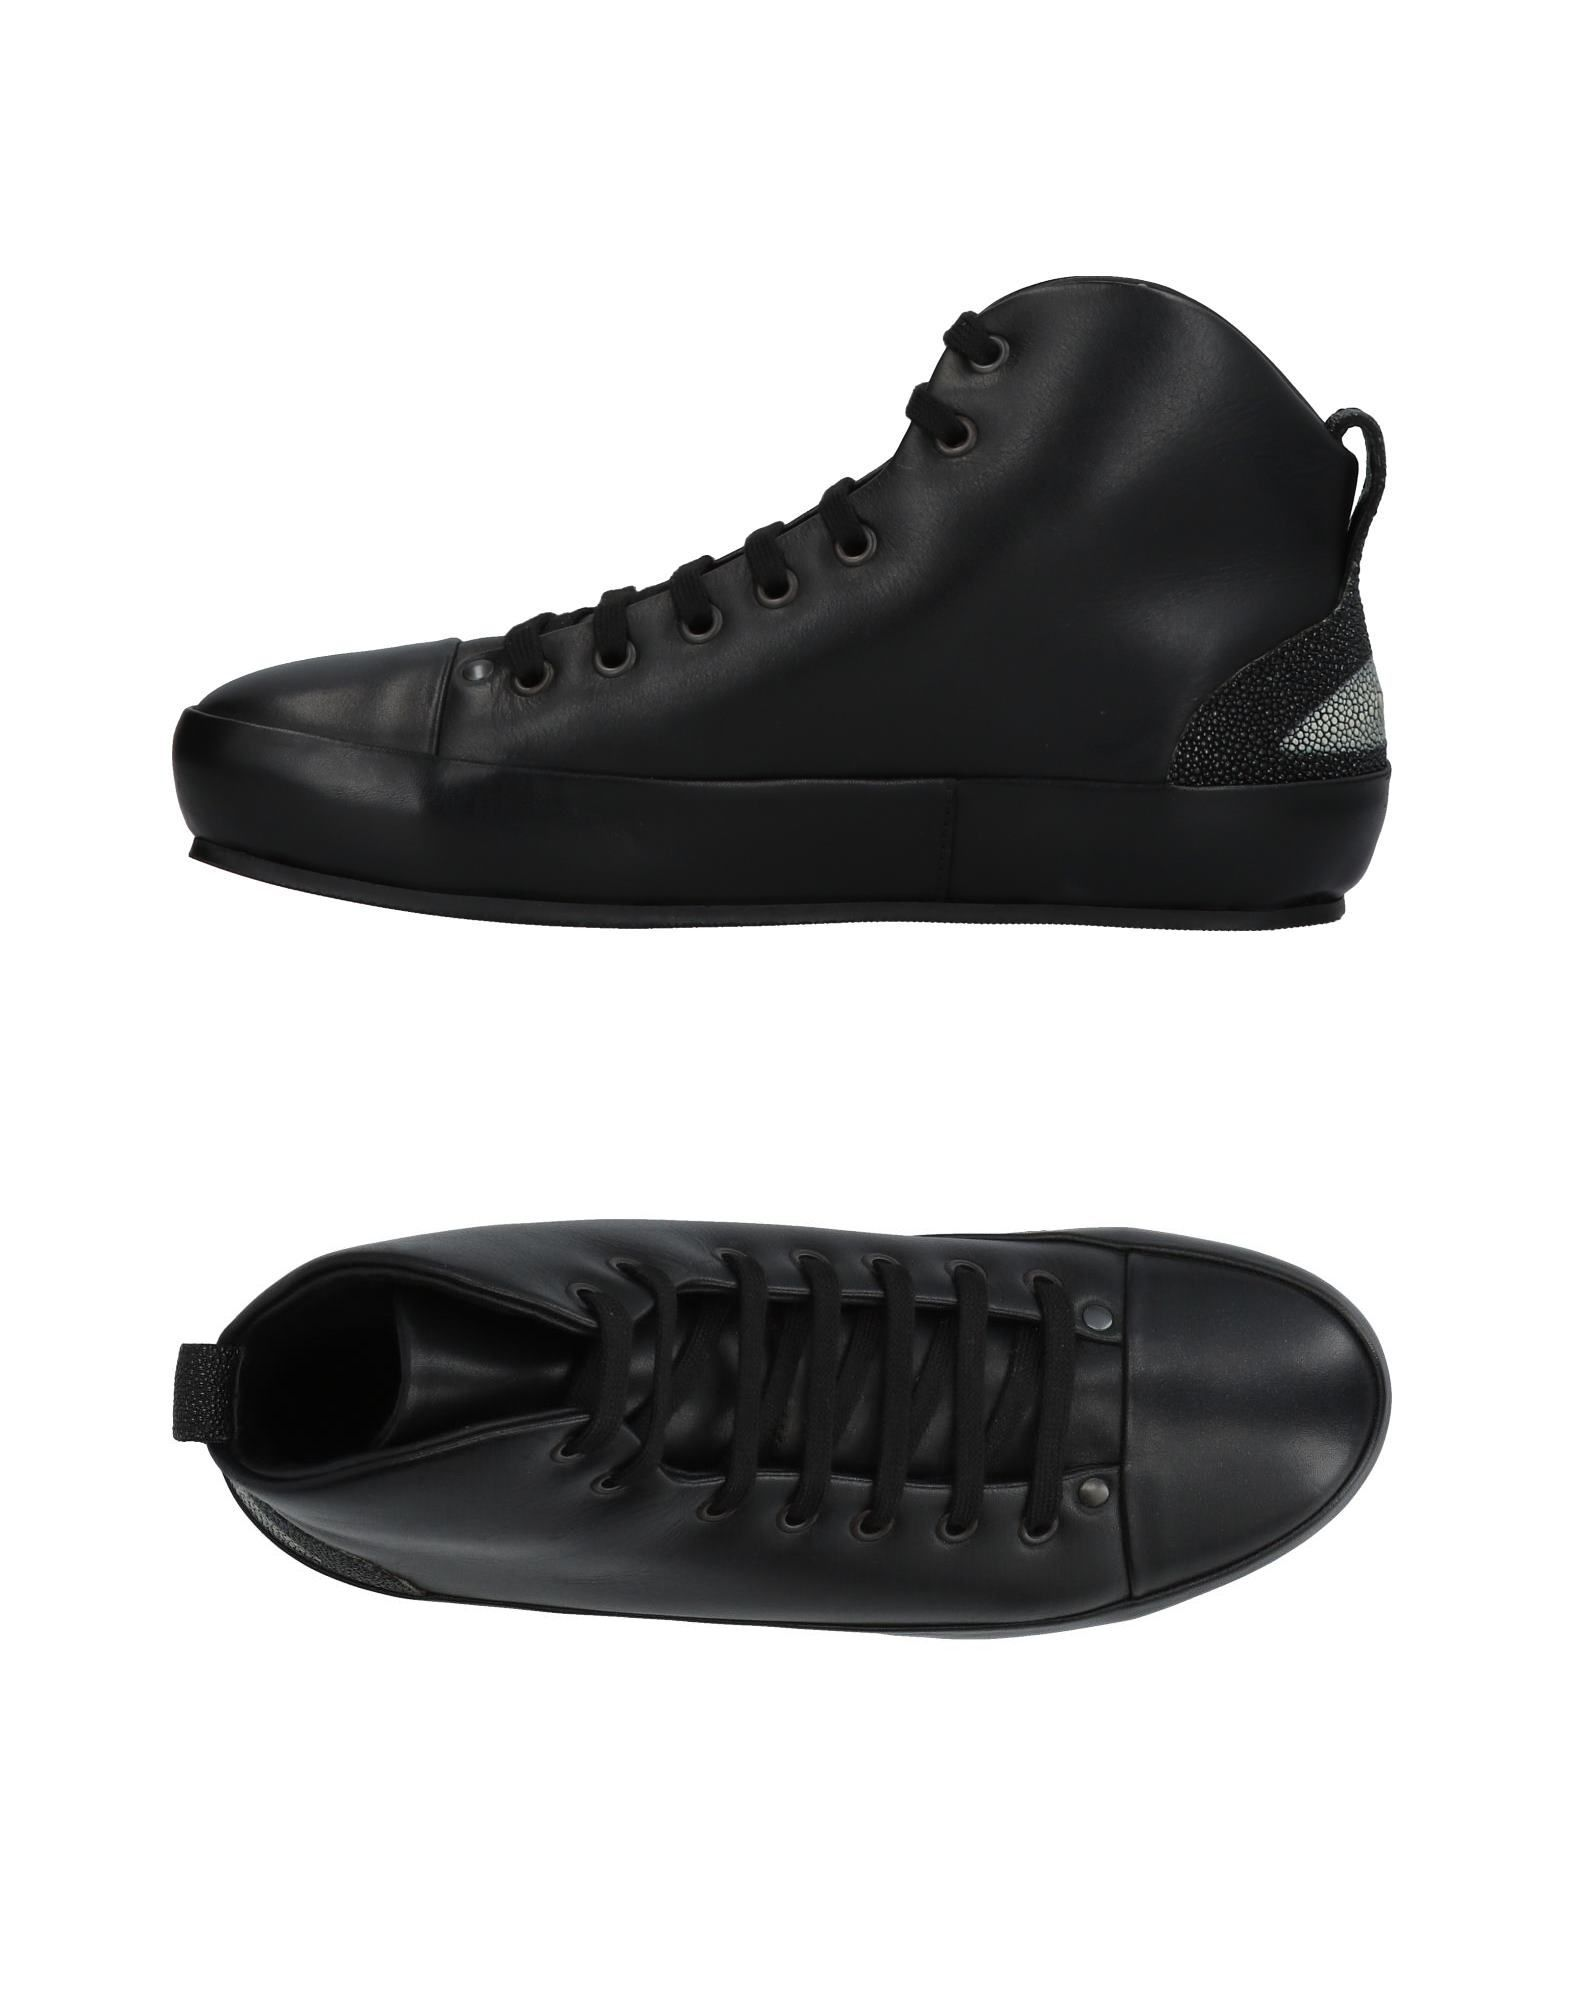 ANTHONY MATHEWS Sneakers in Black